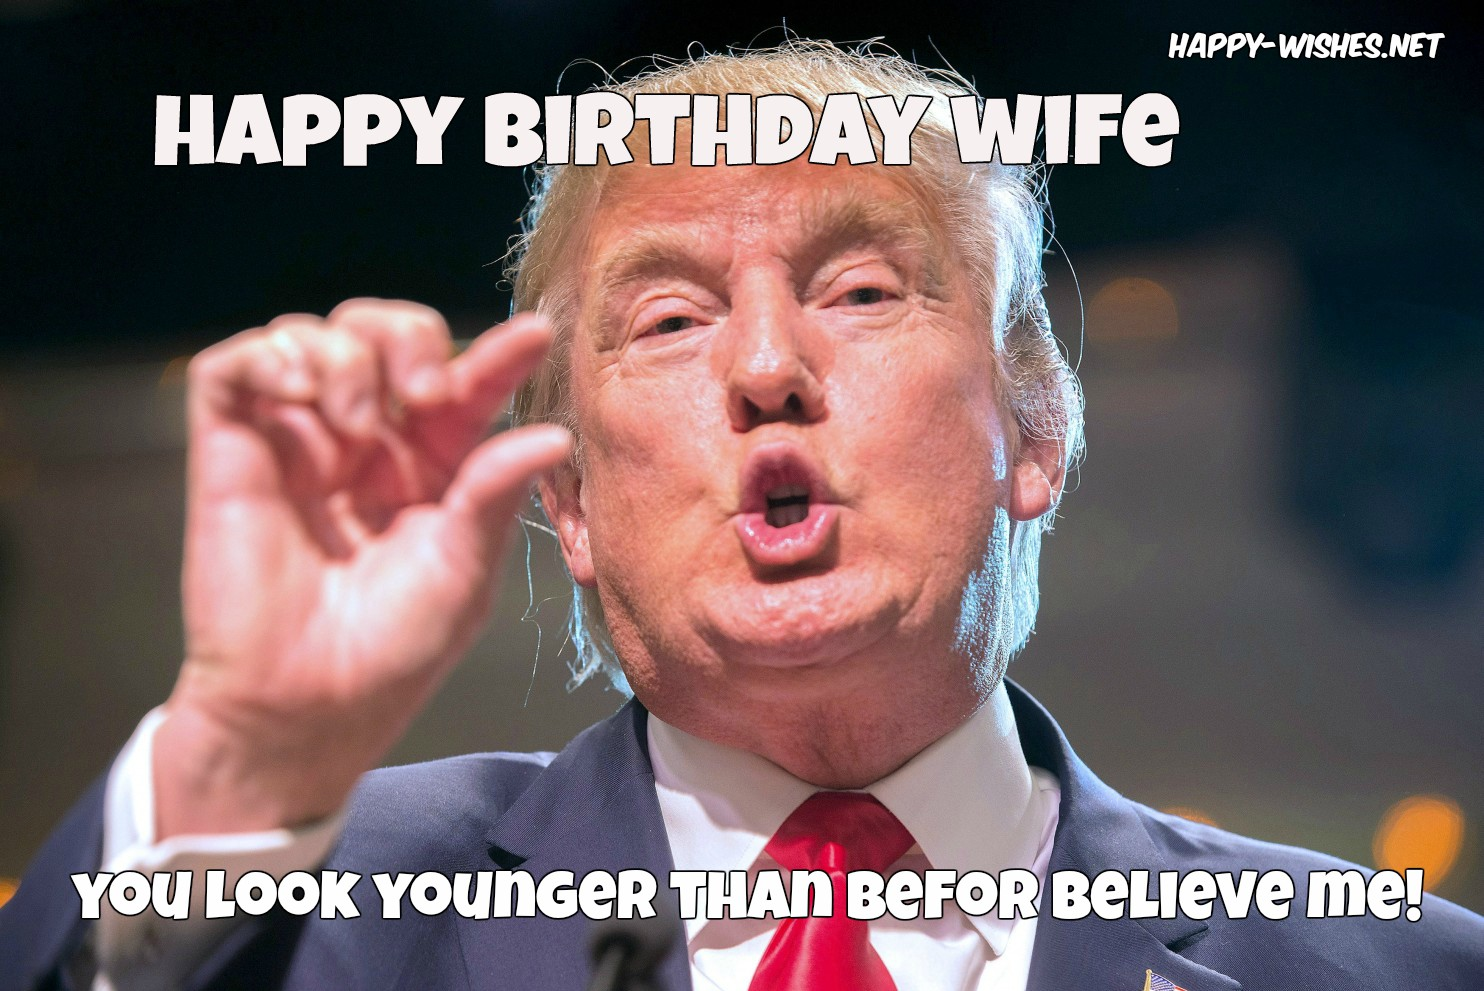 Funny Happy Birthday Meme For Wife : Very funny wife birthday meme pictures images memesboy